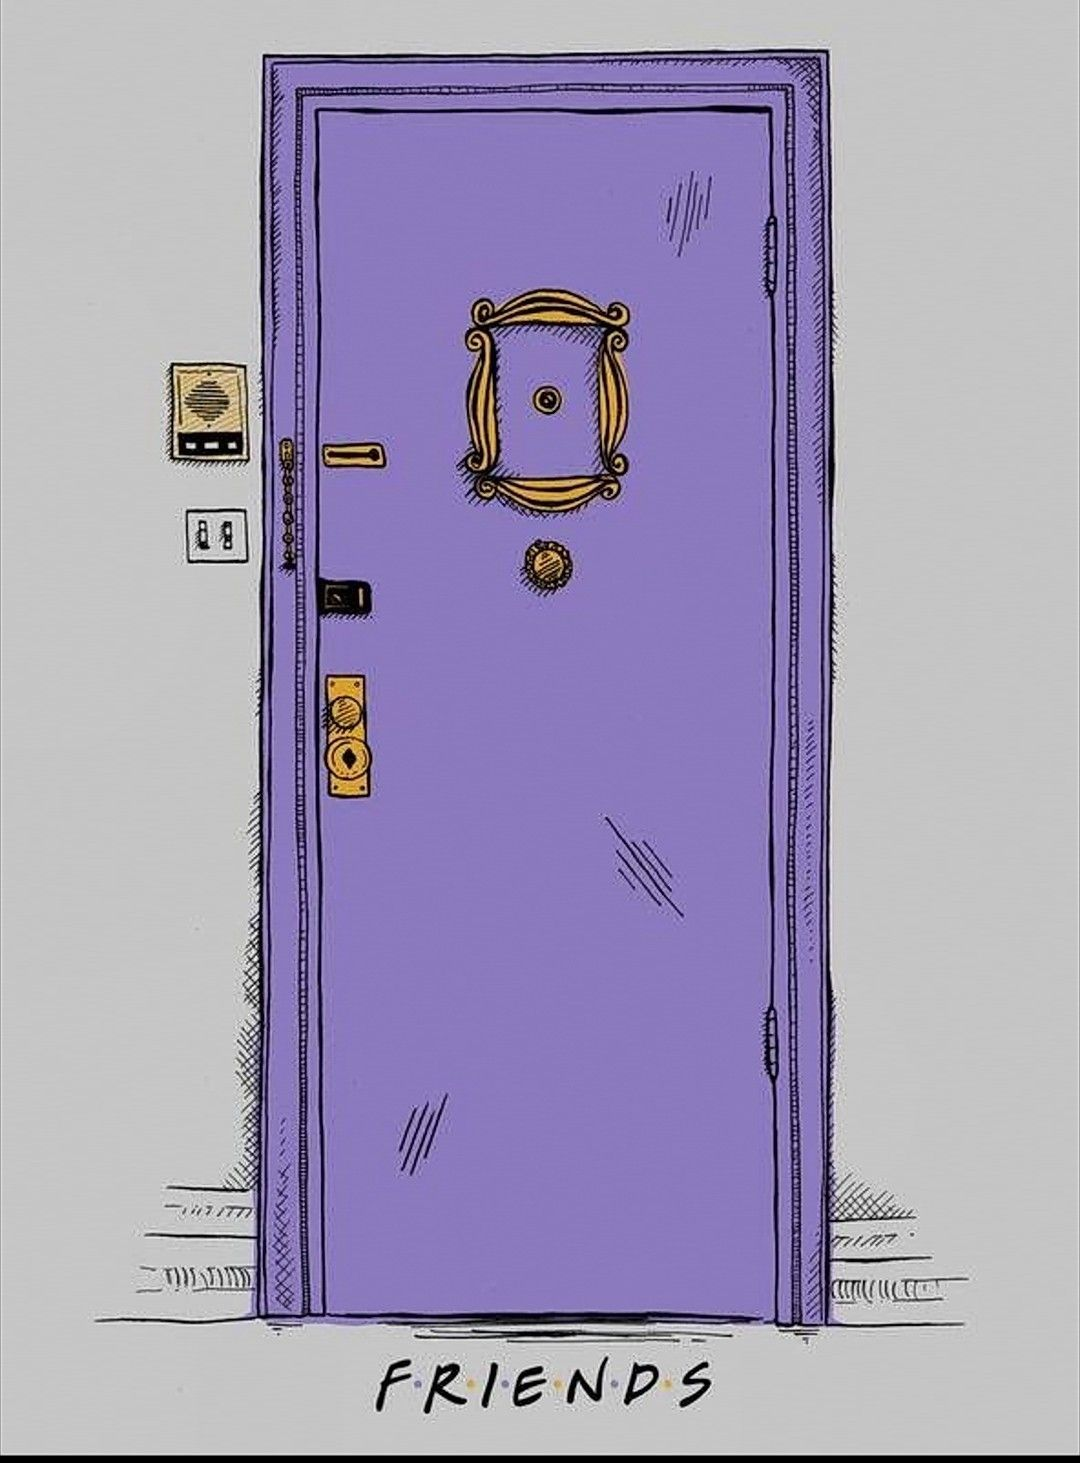 1080x1463 I wish I could have this door | wallpapers | Pinterest | Friends ...